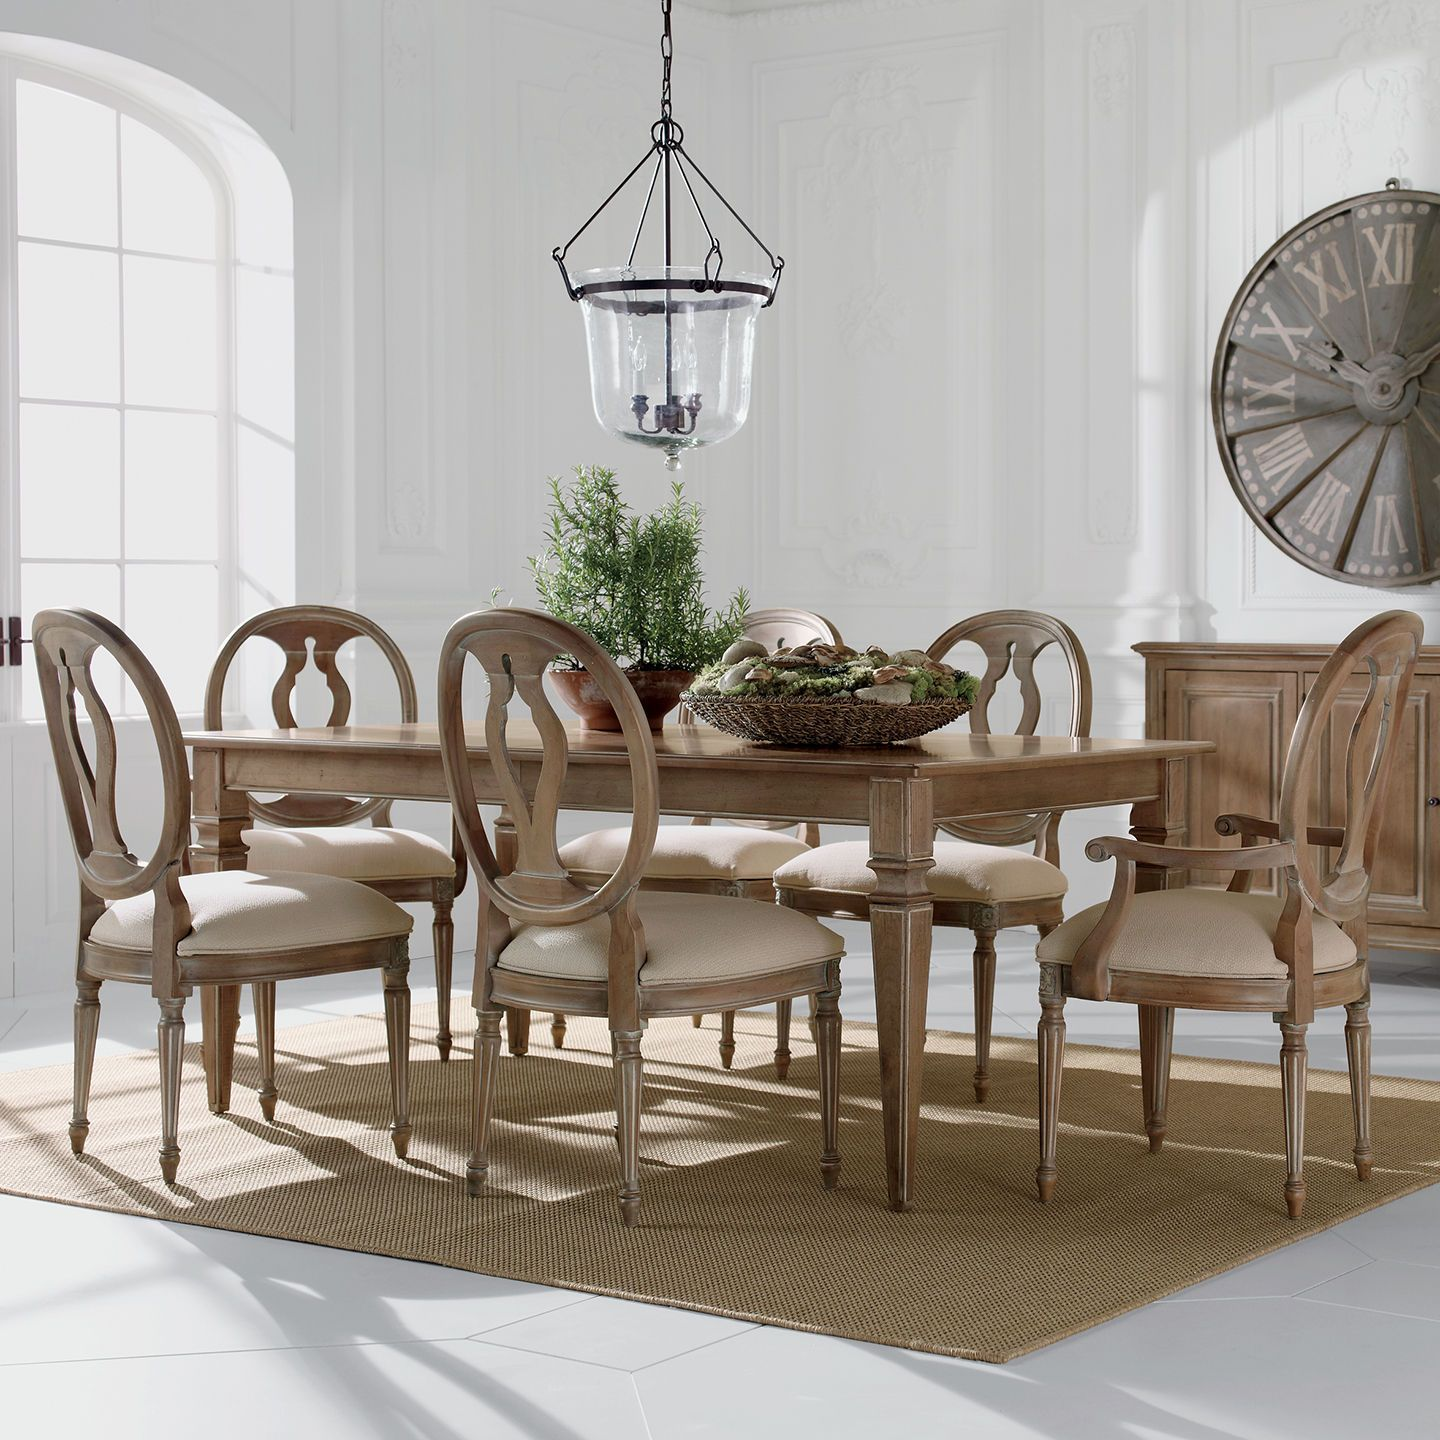 Ethan Allen Dining Room Sets: Neutral Interiors. Ethan Allen Neutral Dining Room. Avery